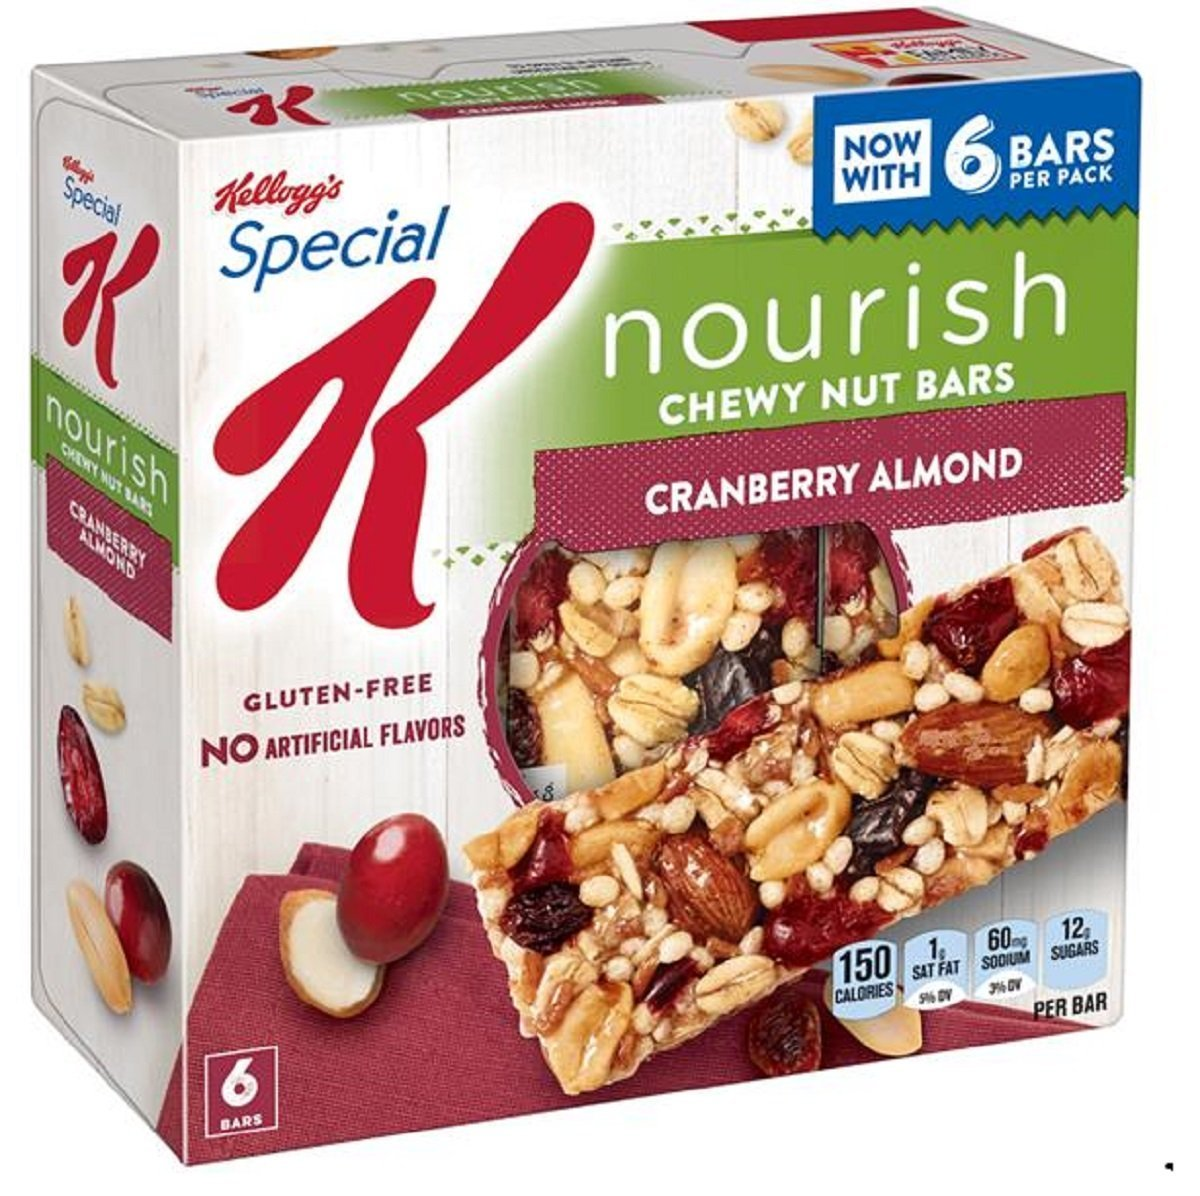 Nourish Cranberry Almond Chewy Nut Bars (4 Boxes) Kellogg's Special K